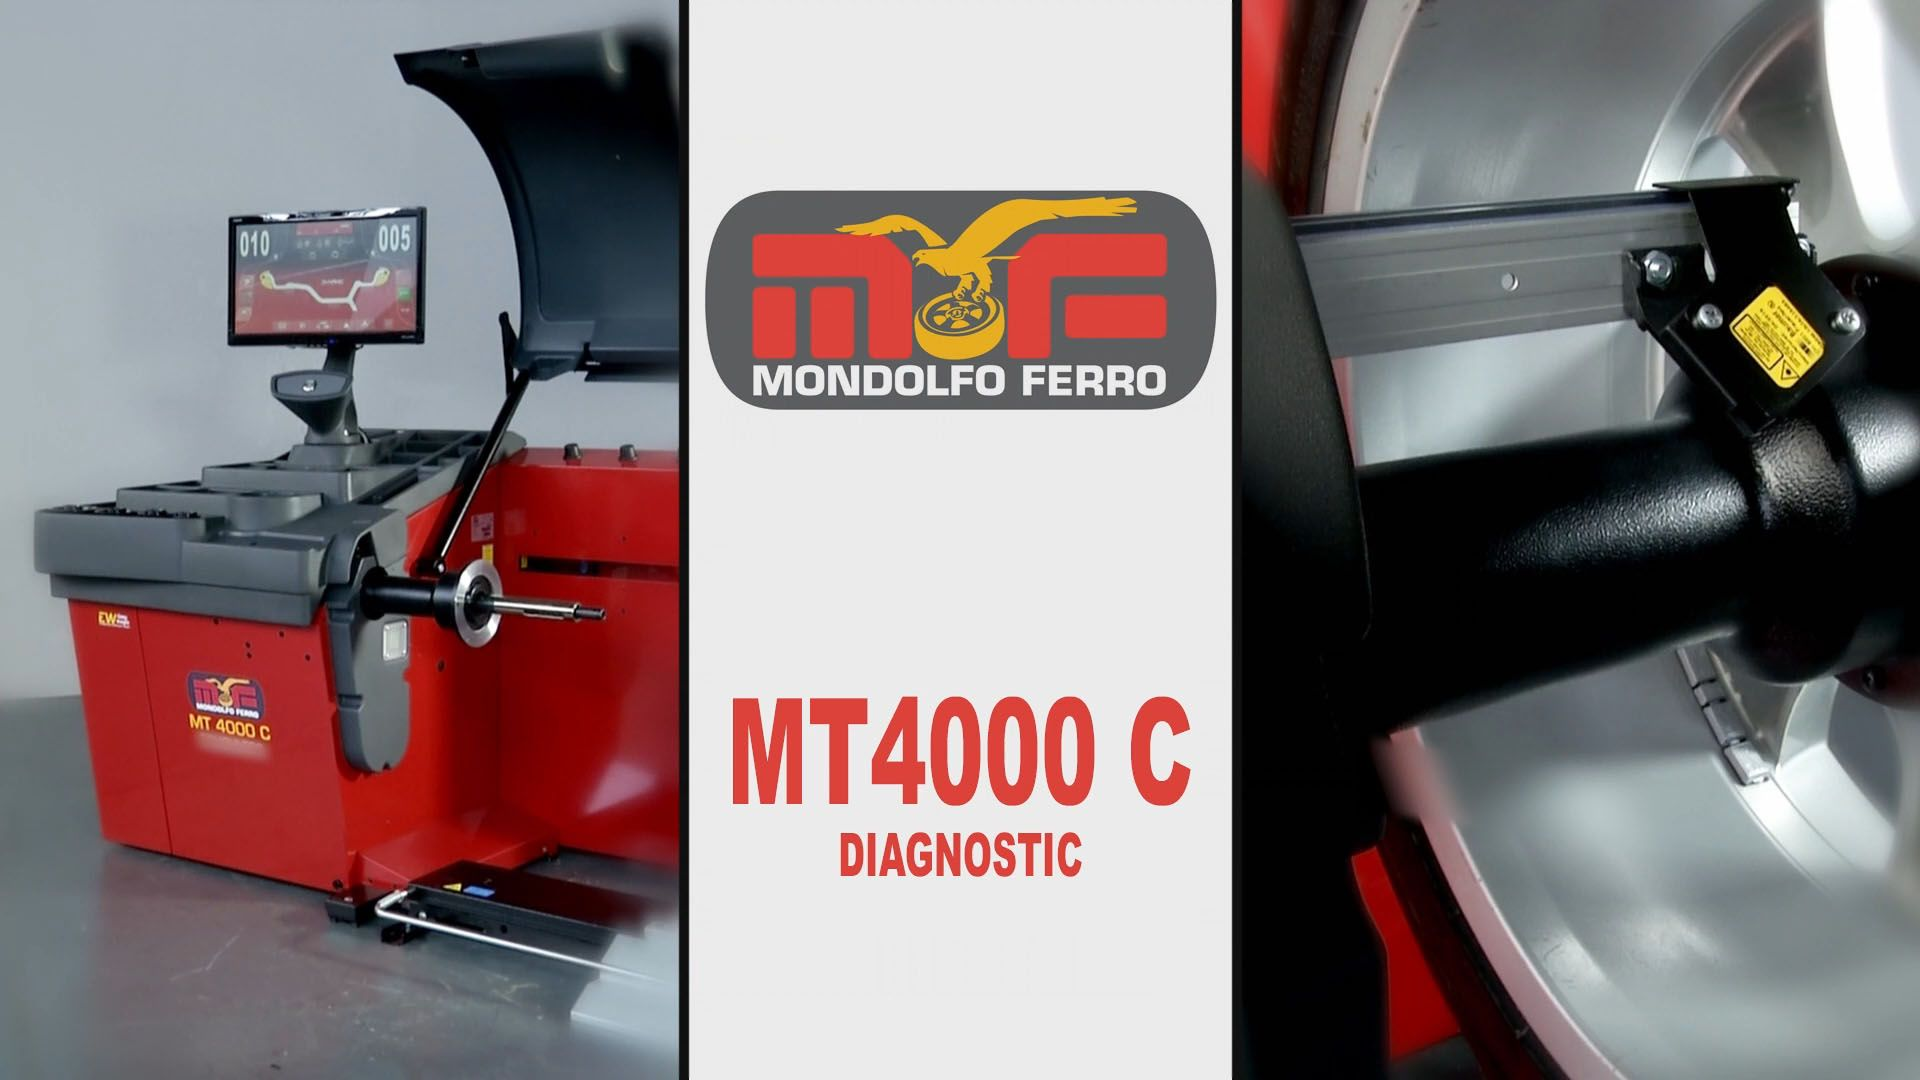 MT 4000 UP C Diagnostic